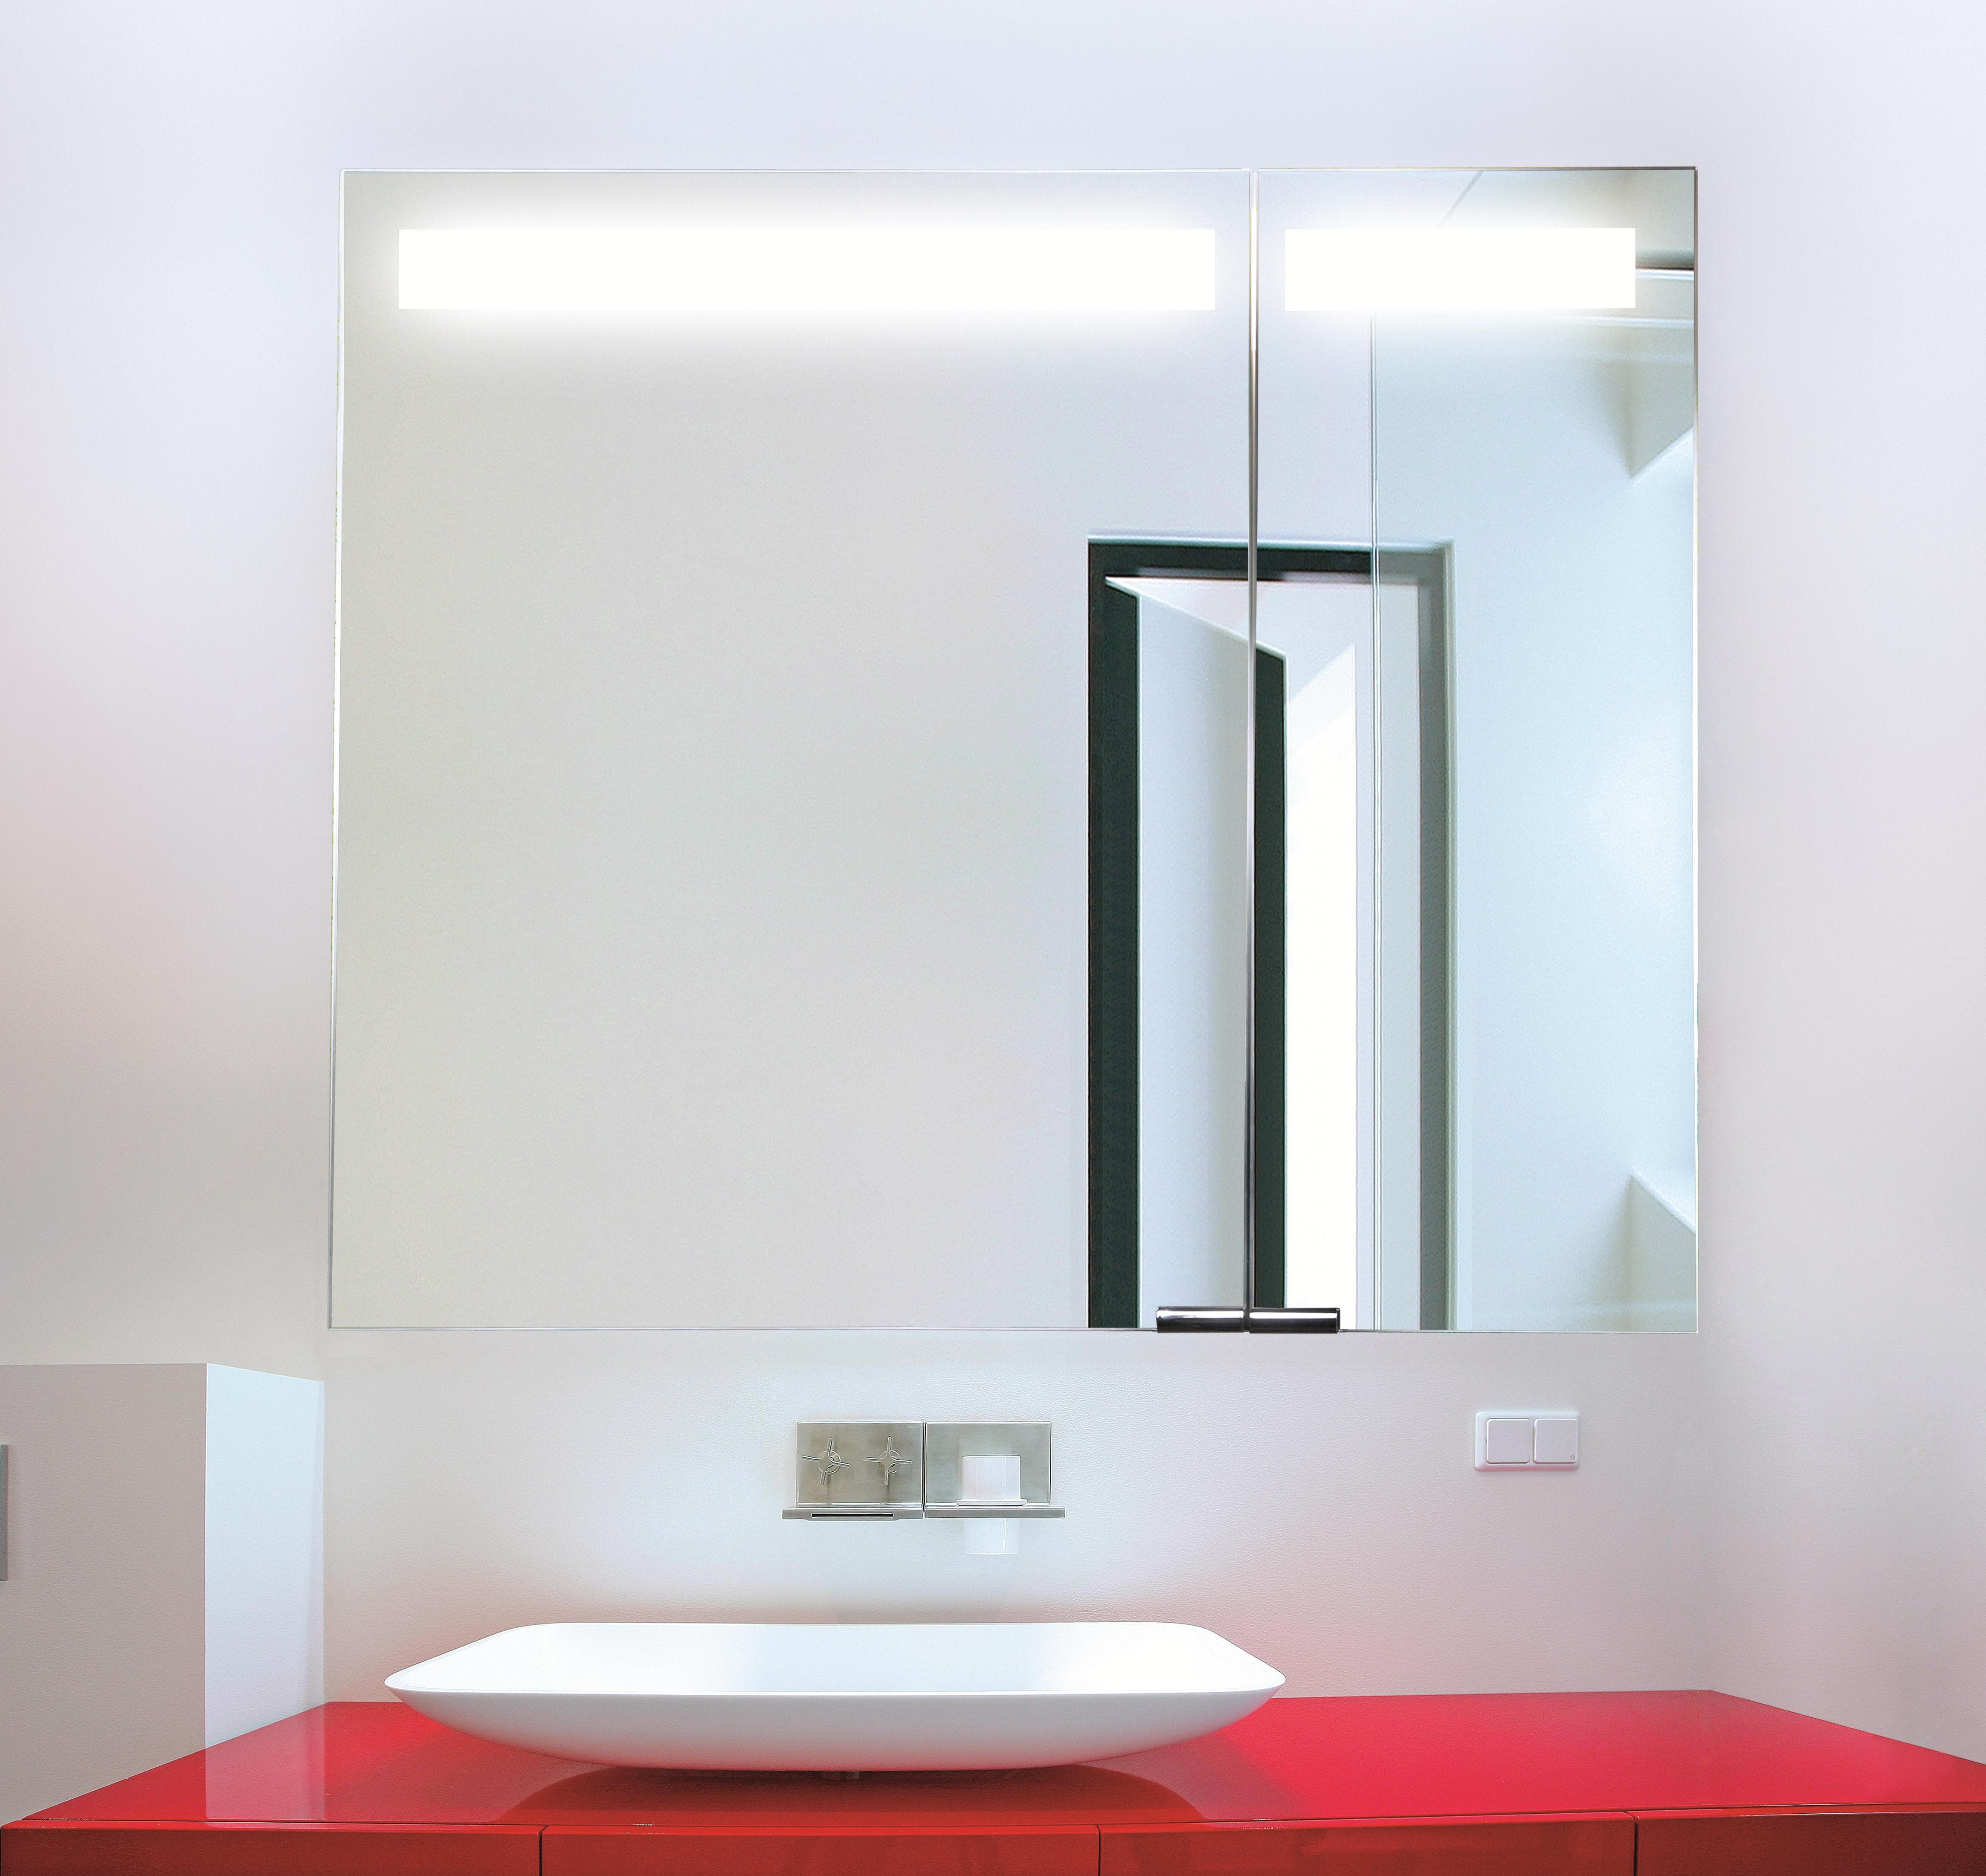 mirrored white wall mirrors with uk lights premier mirror bathroom cabinets lighting medicine india cabinet ikea